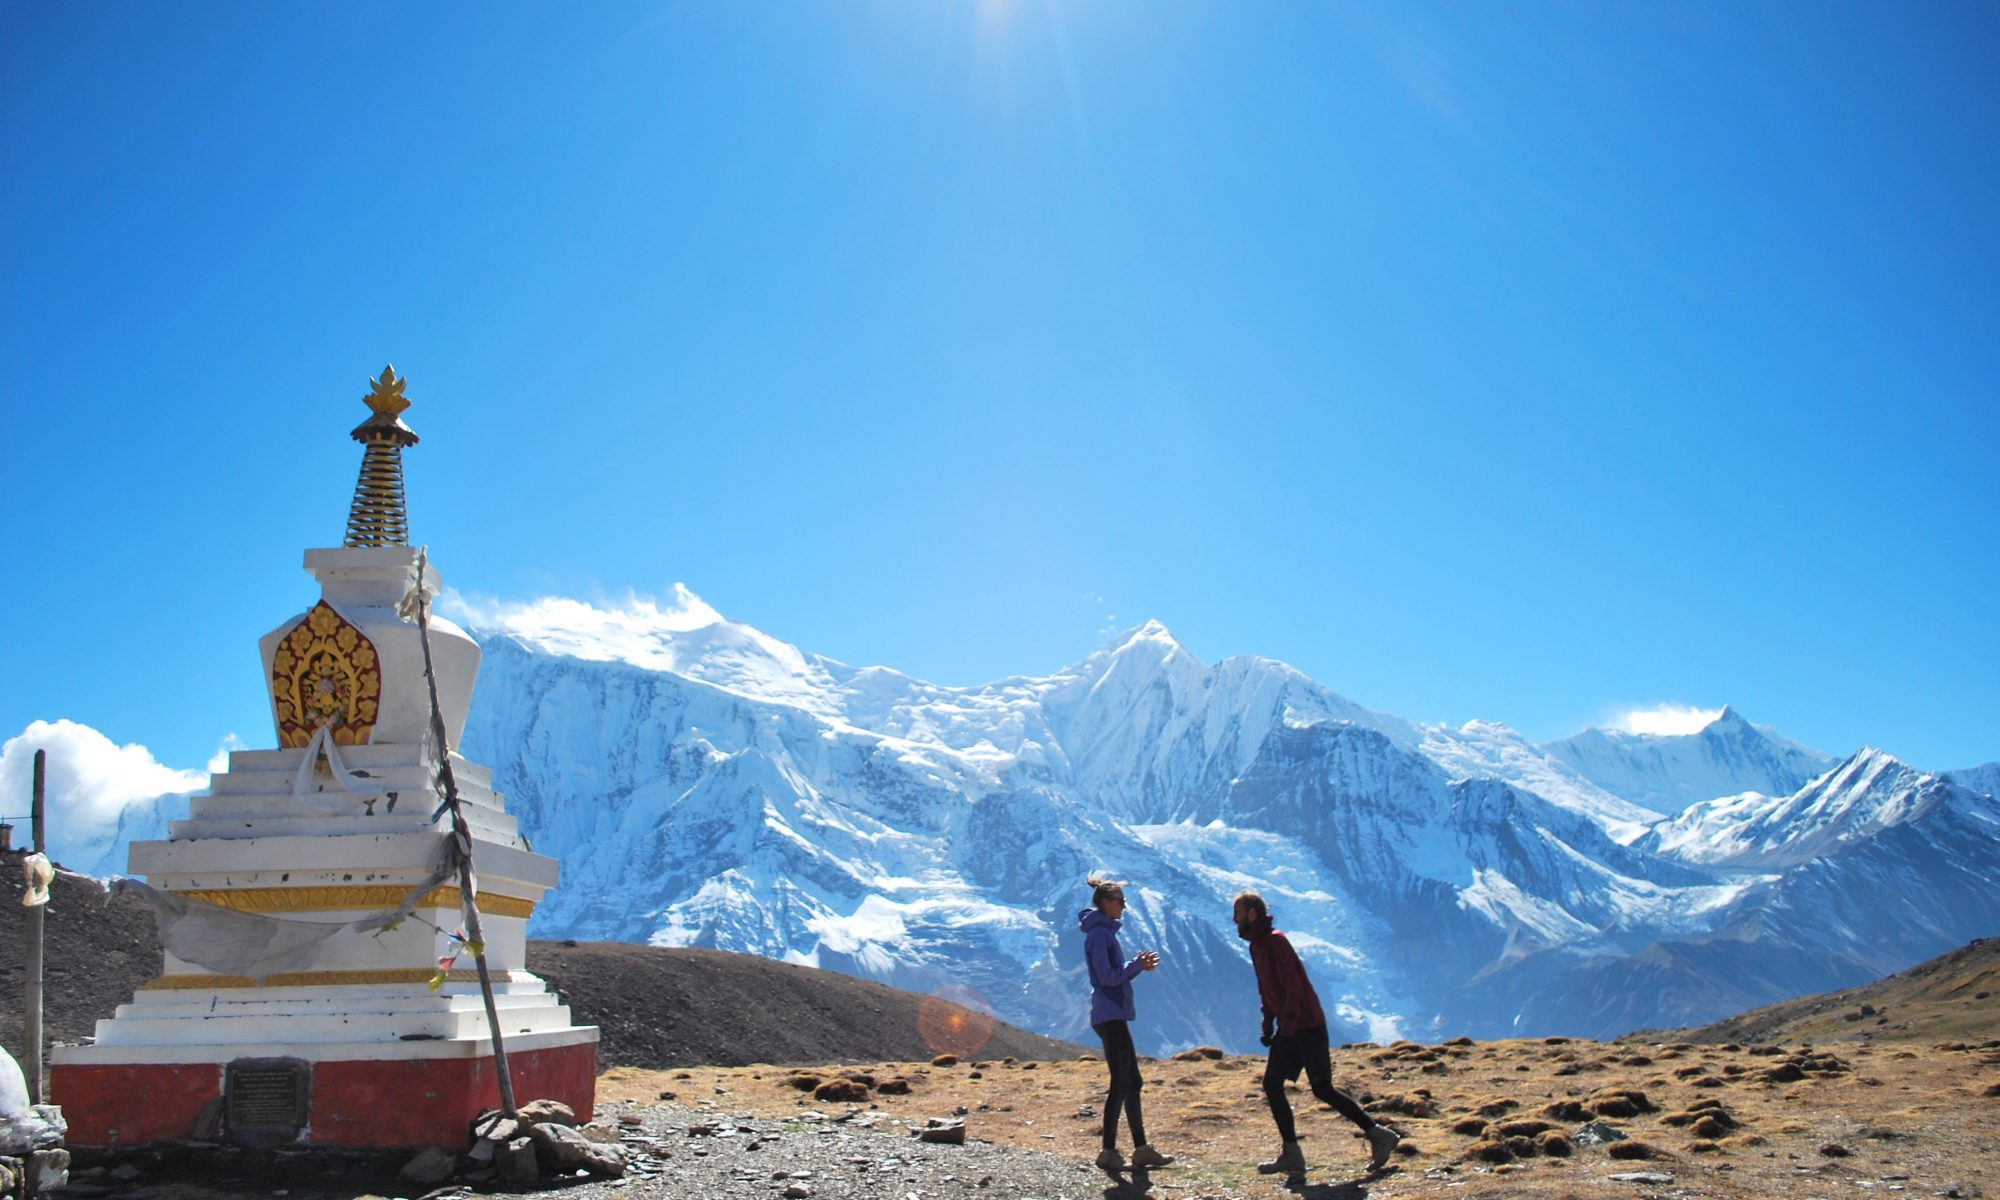 The perfect strugglers at the annapurna circuit